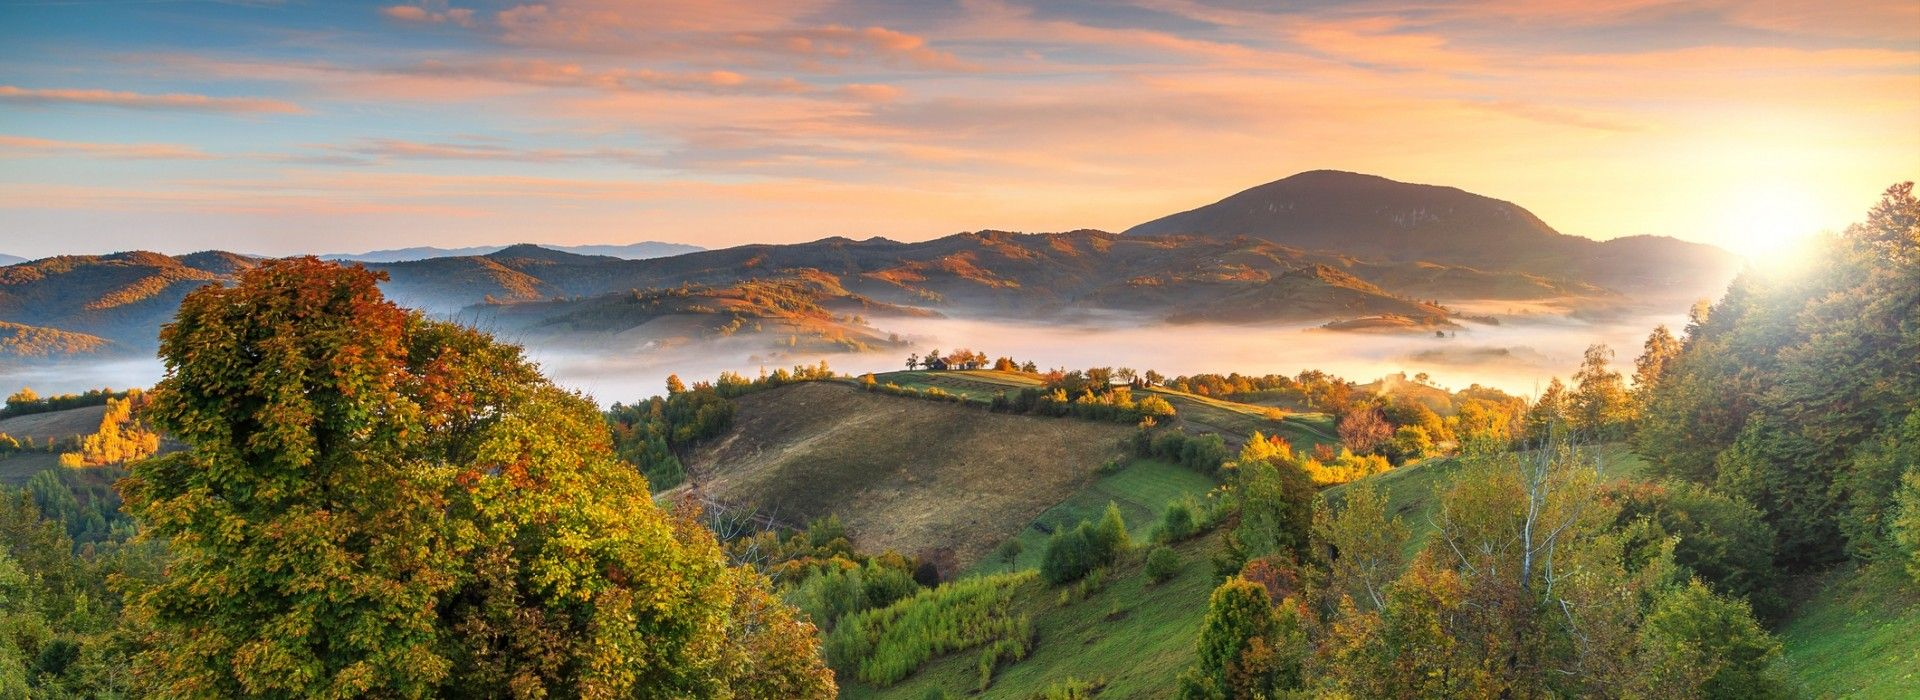 Cultural, religious and historic sites Tours in Eastern Europe